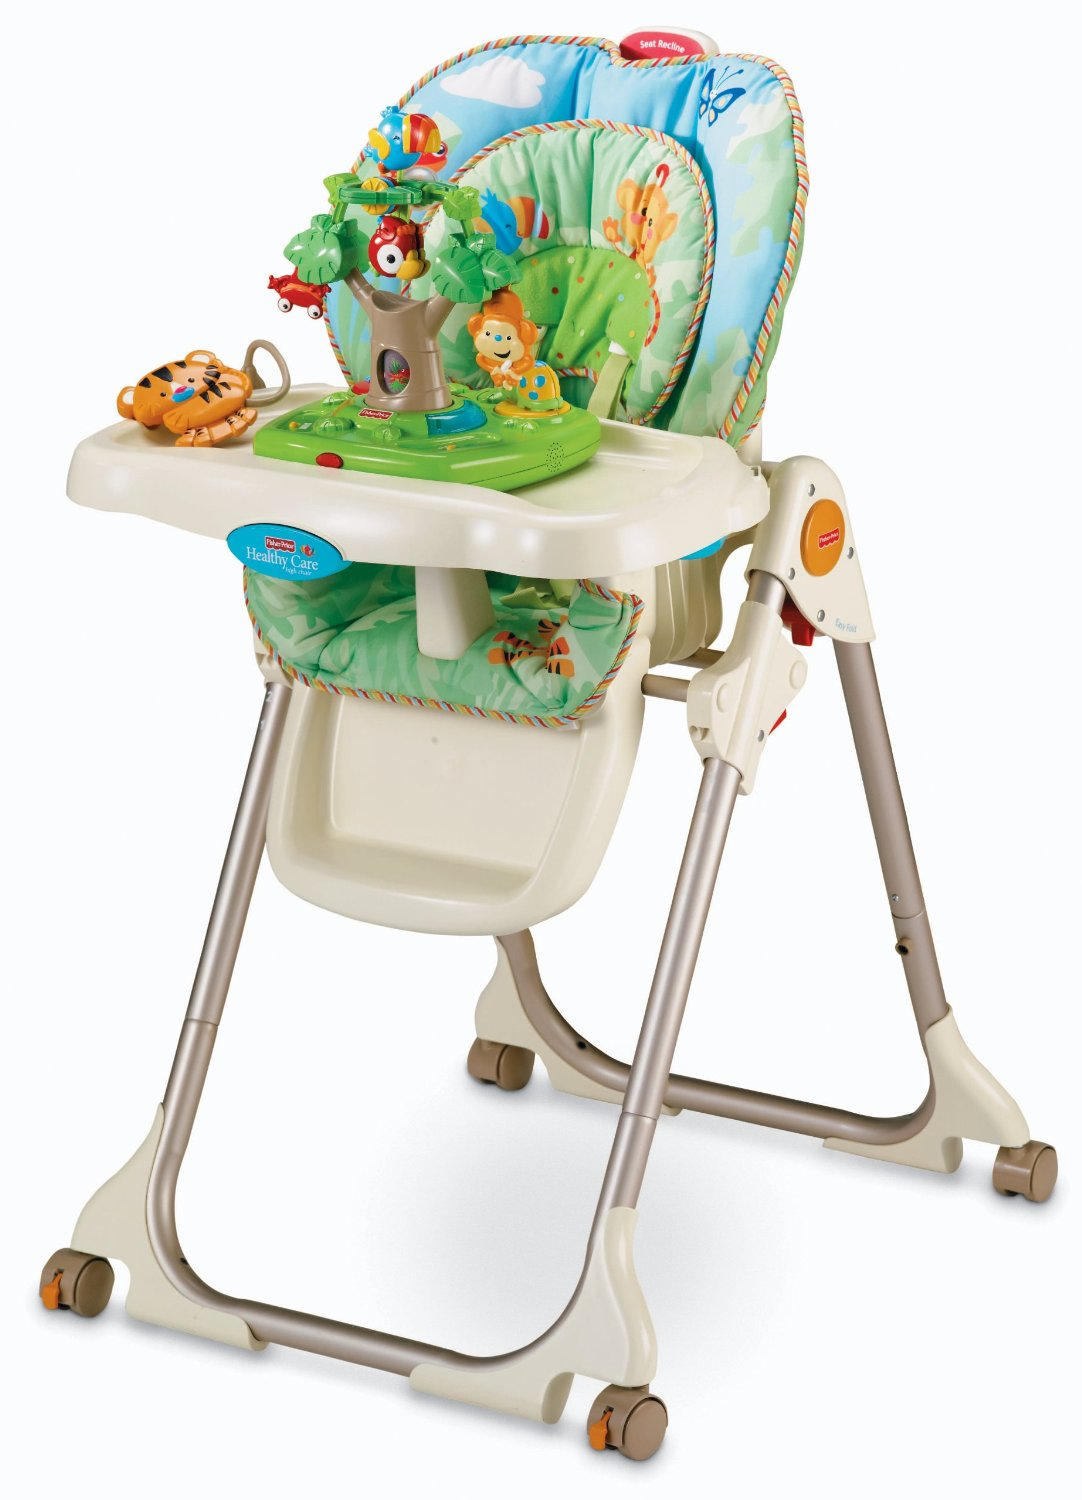 Toddler Approved!: The Best High Chairs and Booster Seats